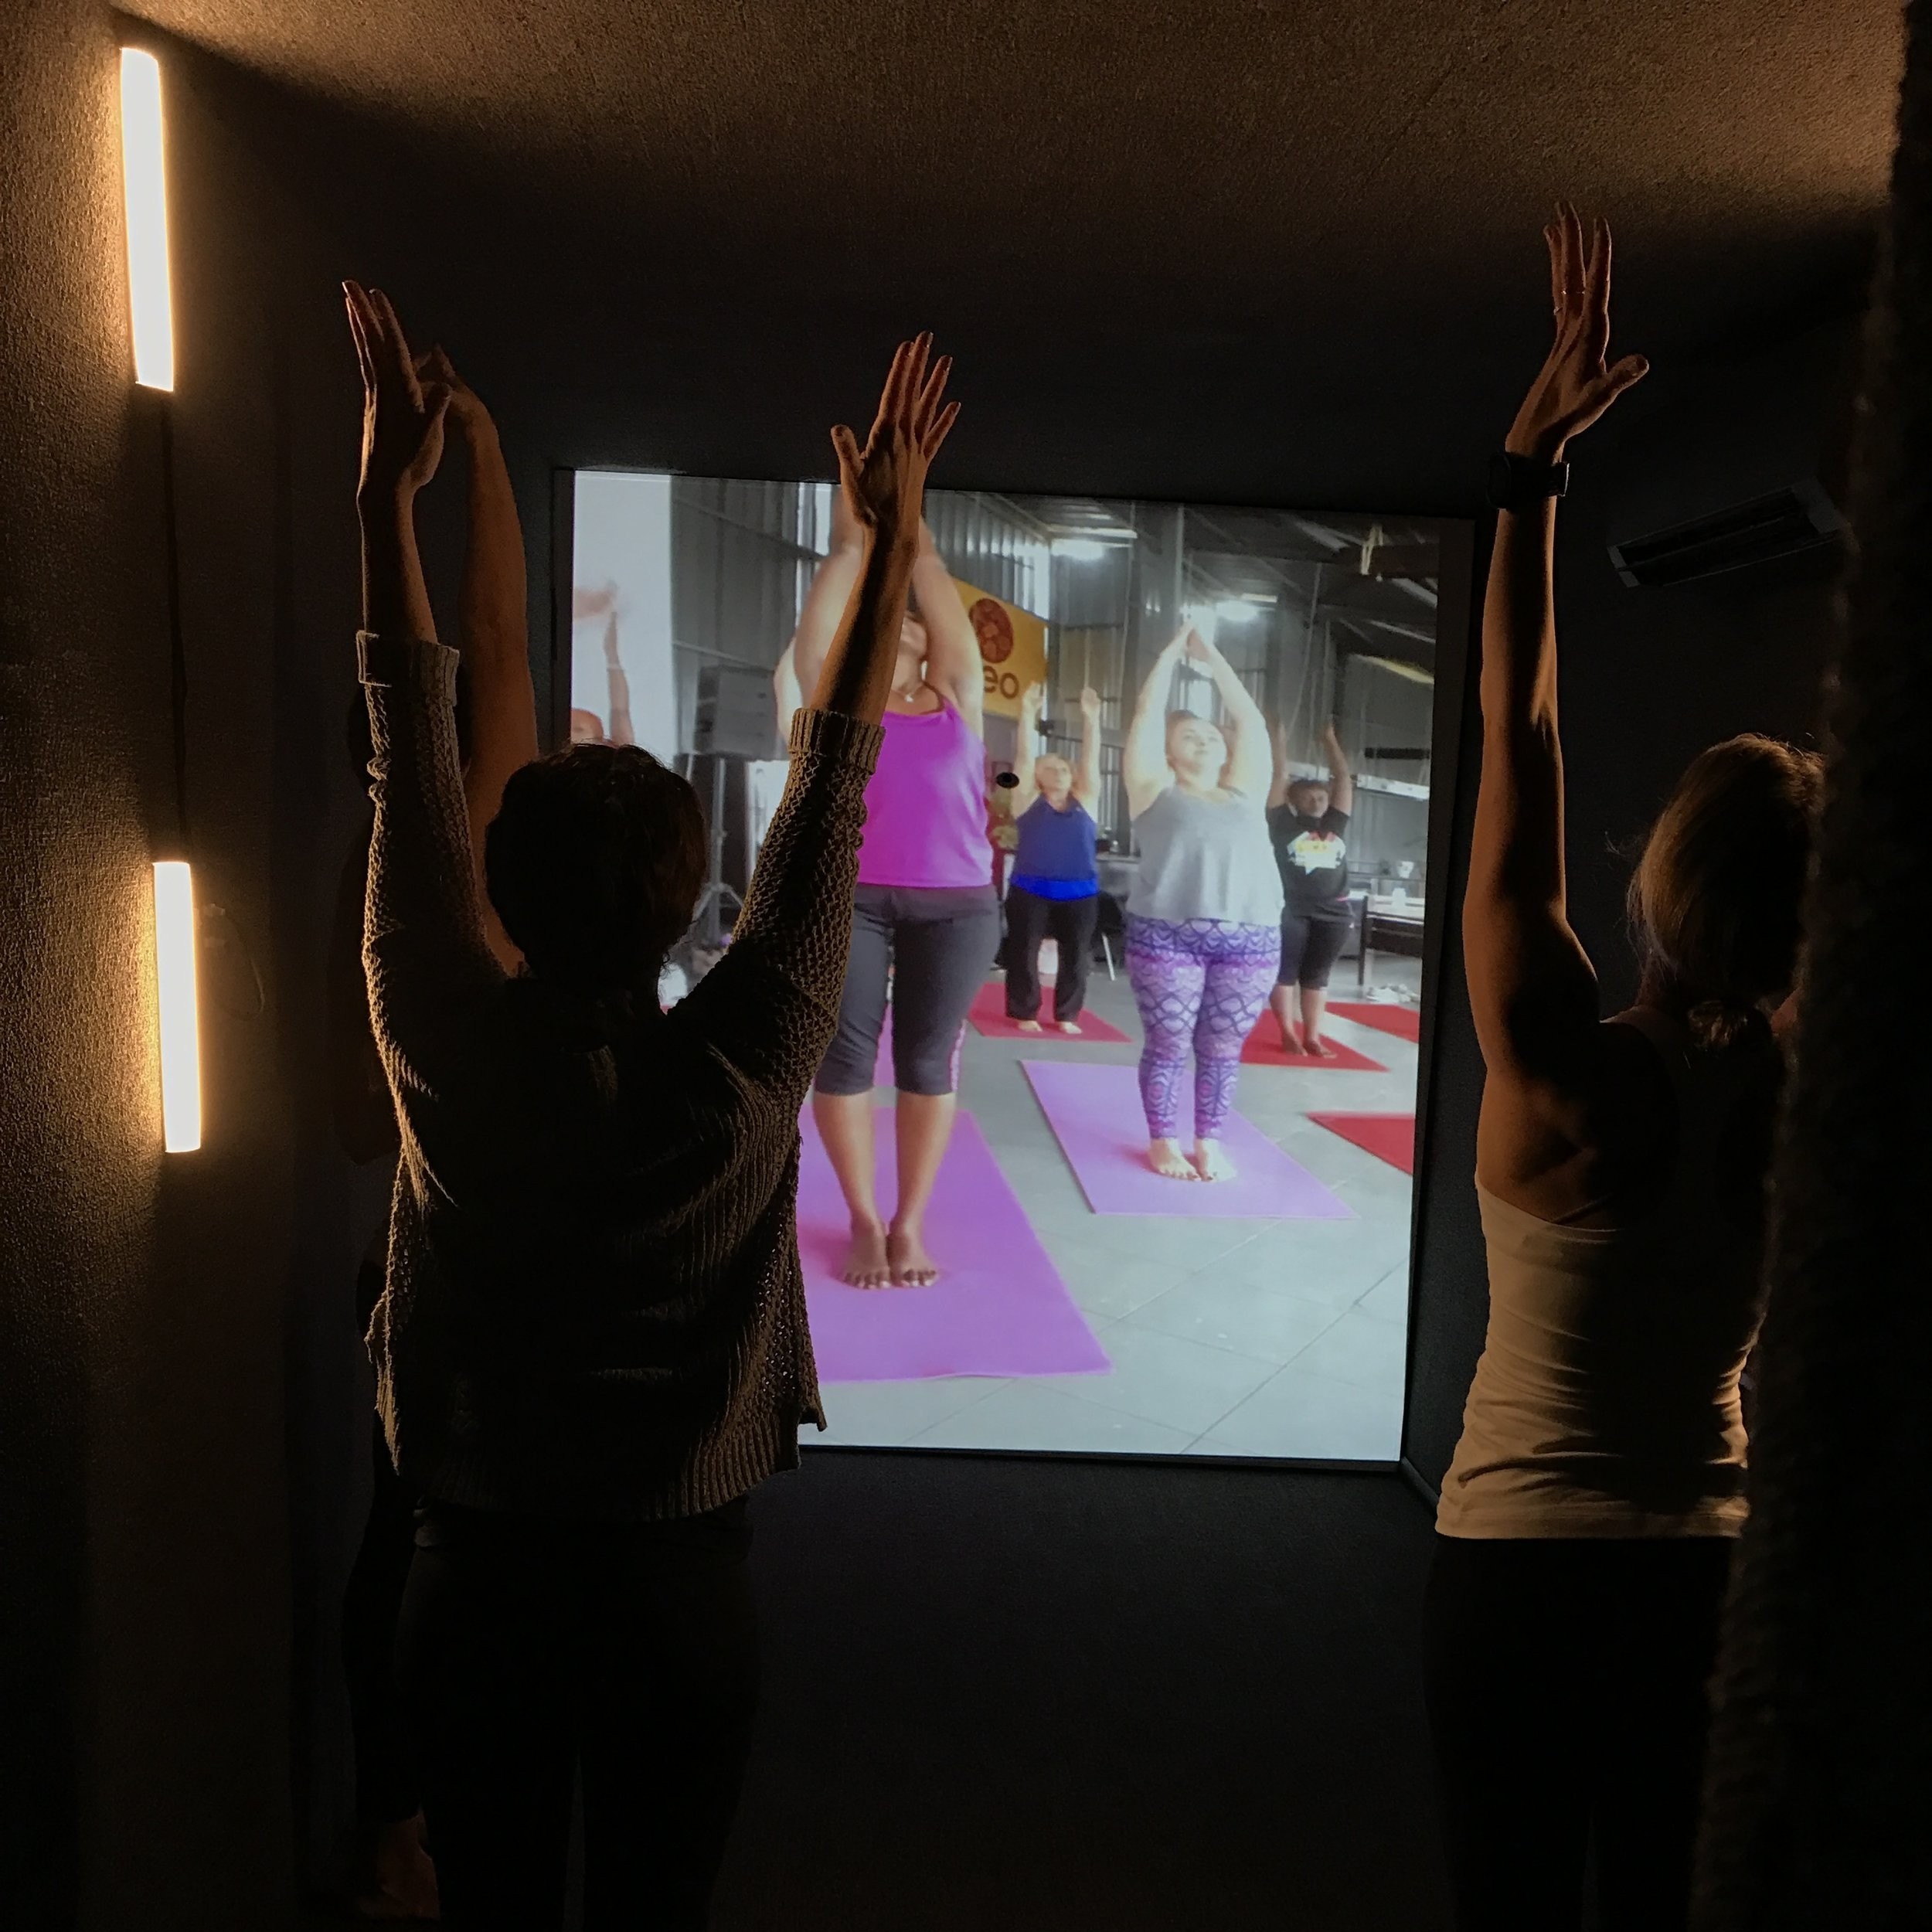 Yogis in Chicago and Kigali learn from one another and practice.